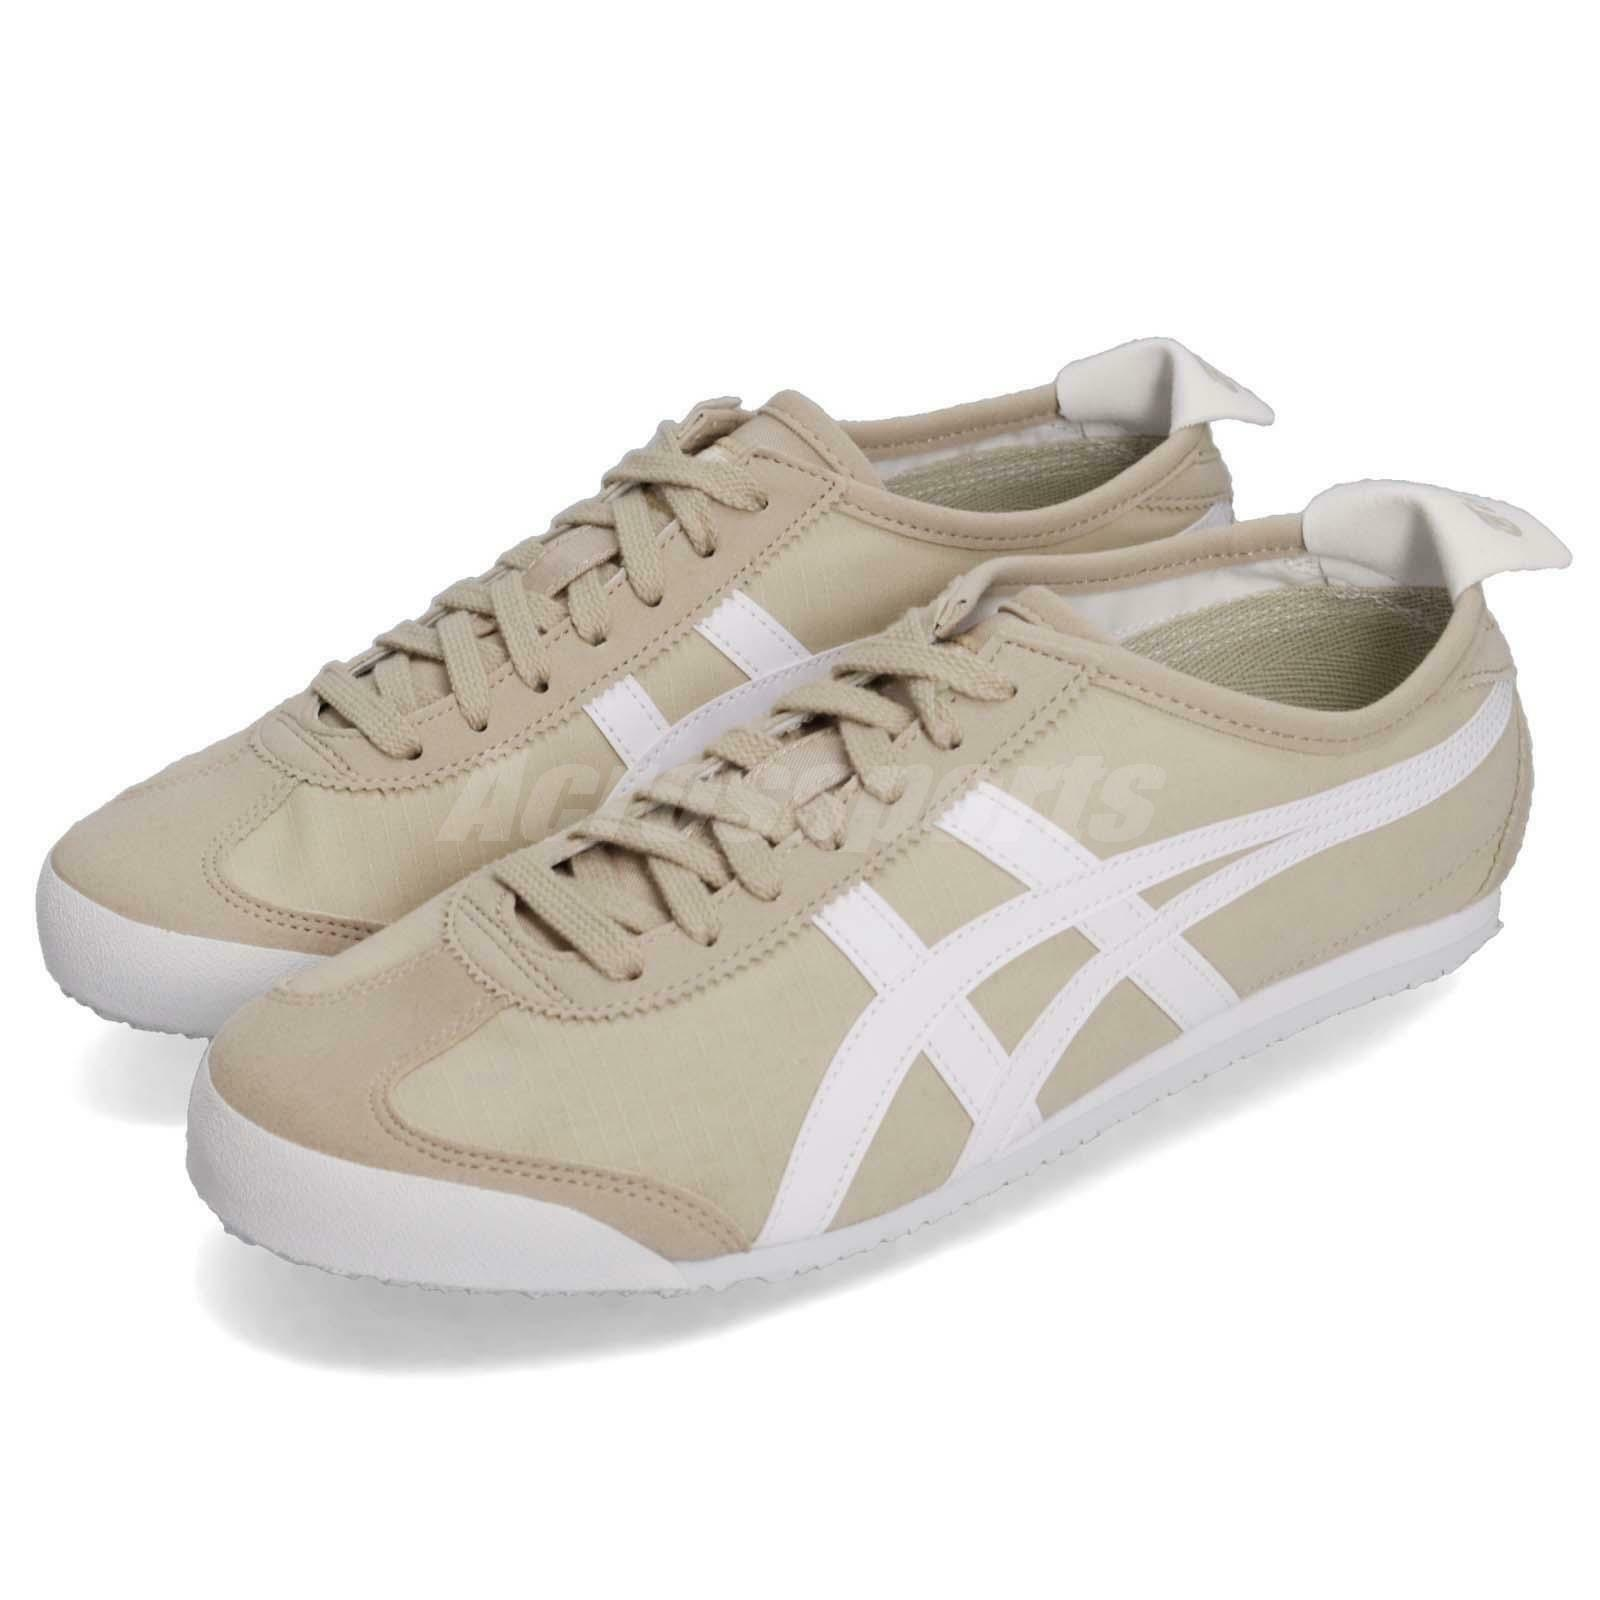 Asics Onitsuka Tiger Mexico 66 Simply Taupe White Men Women shoes 1183A223-250